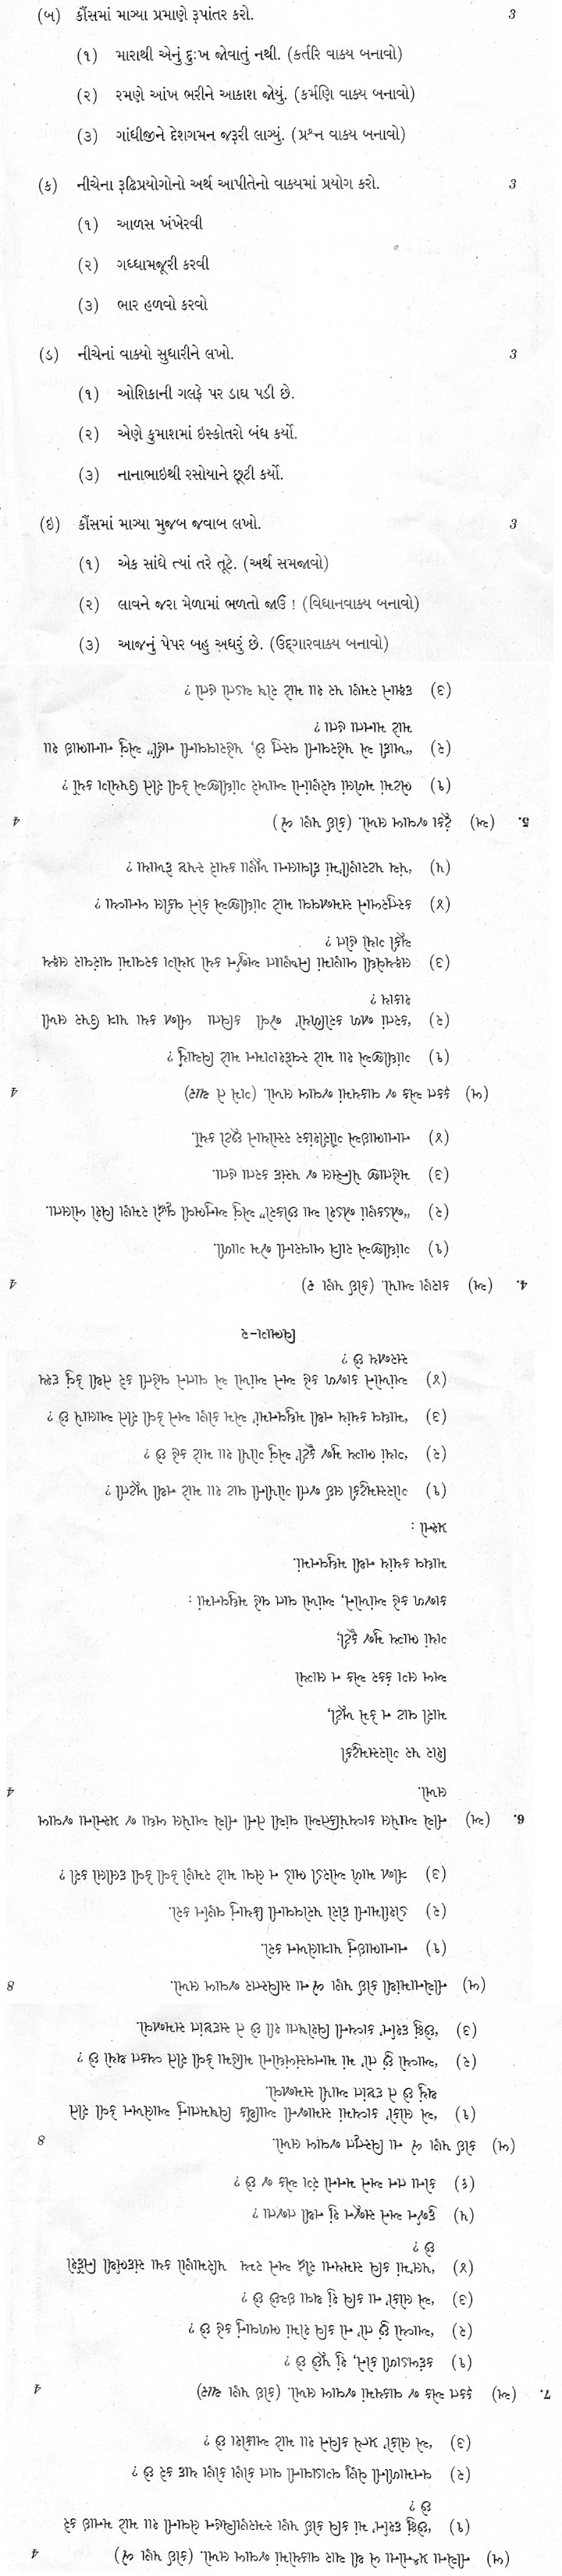 CBSE Class X Previous Year Question Papers 2012 Gujarati